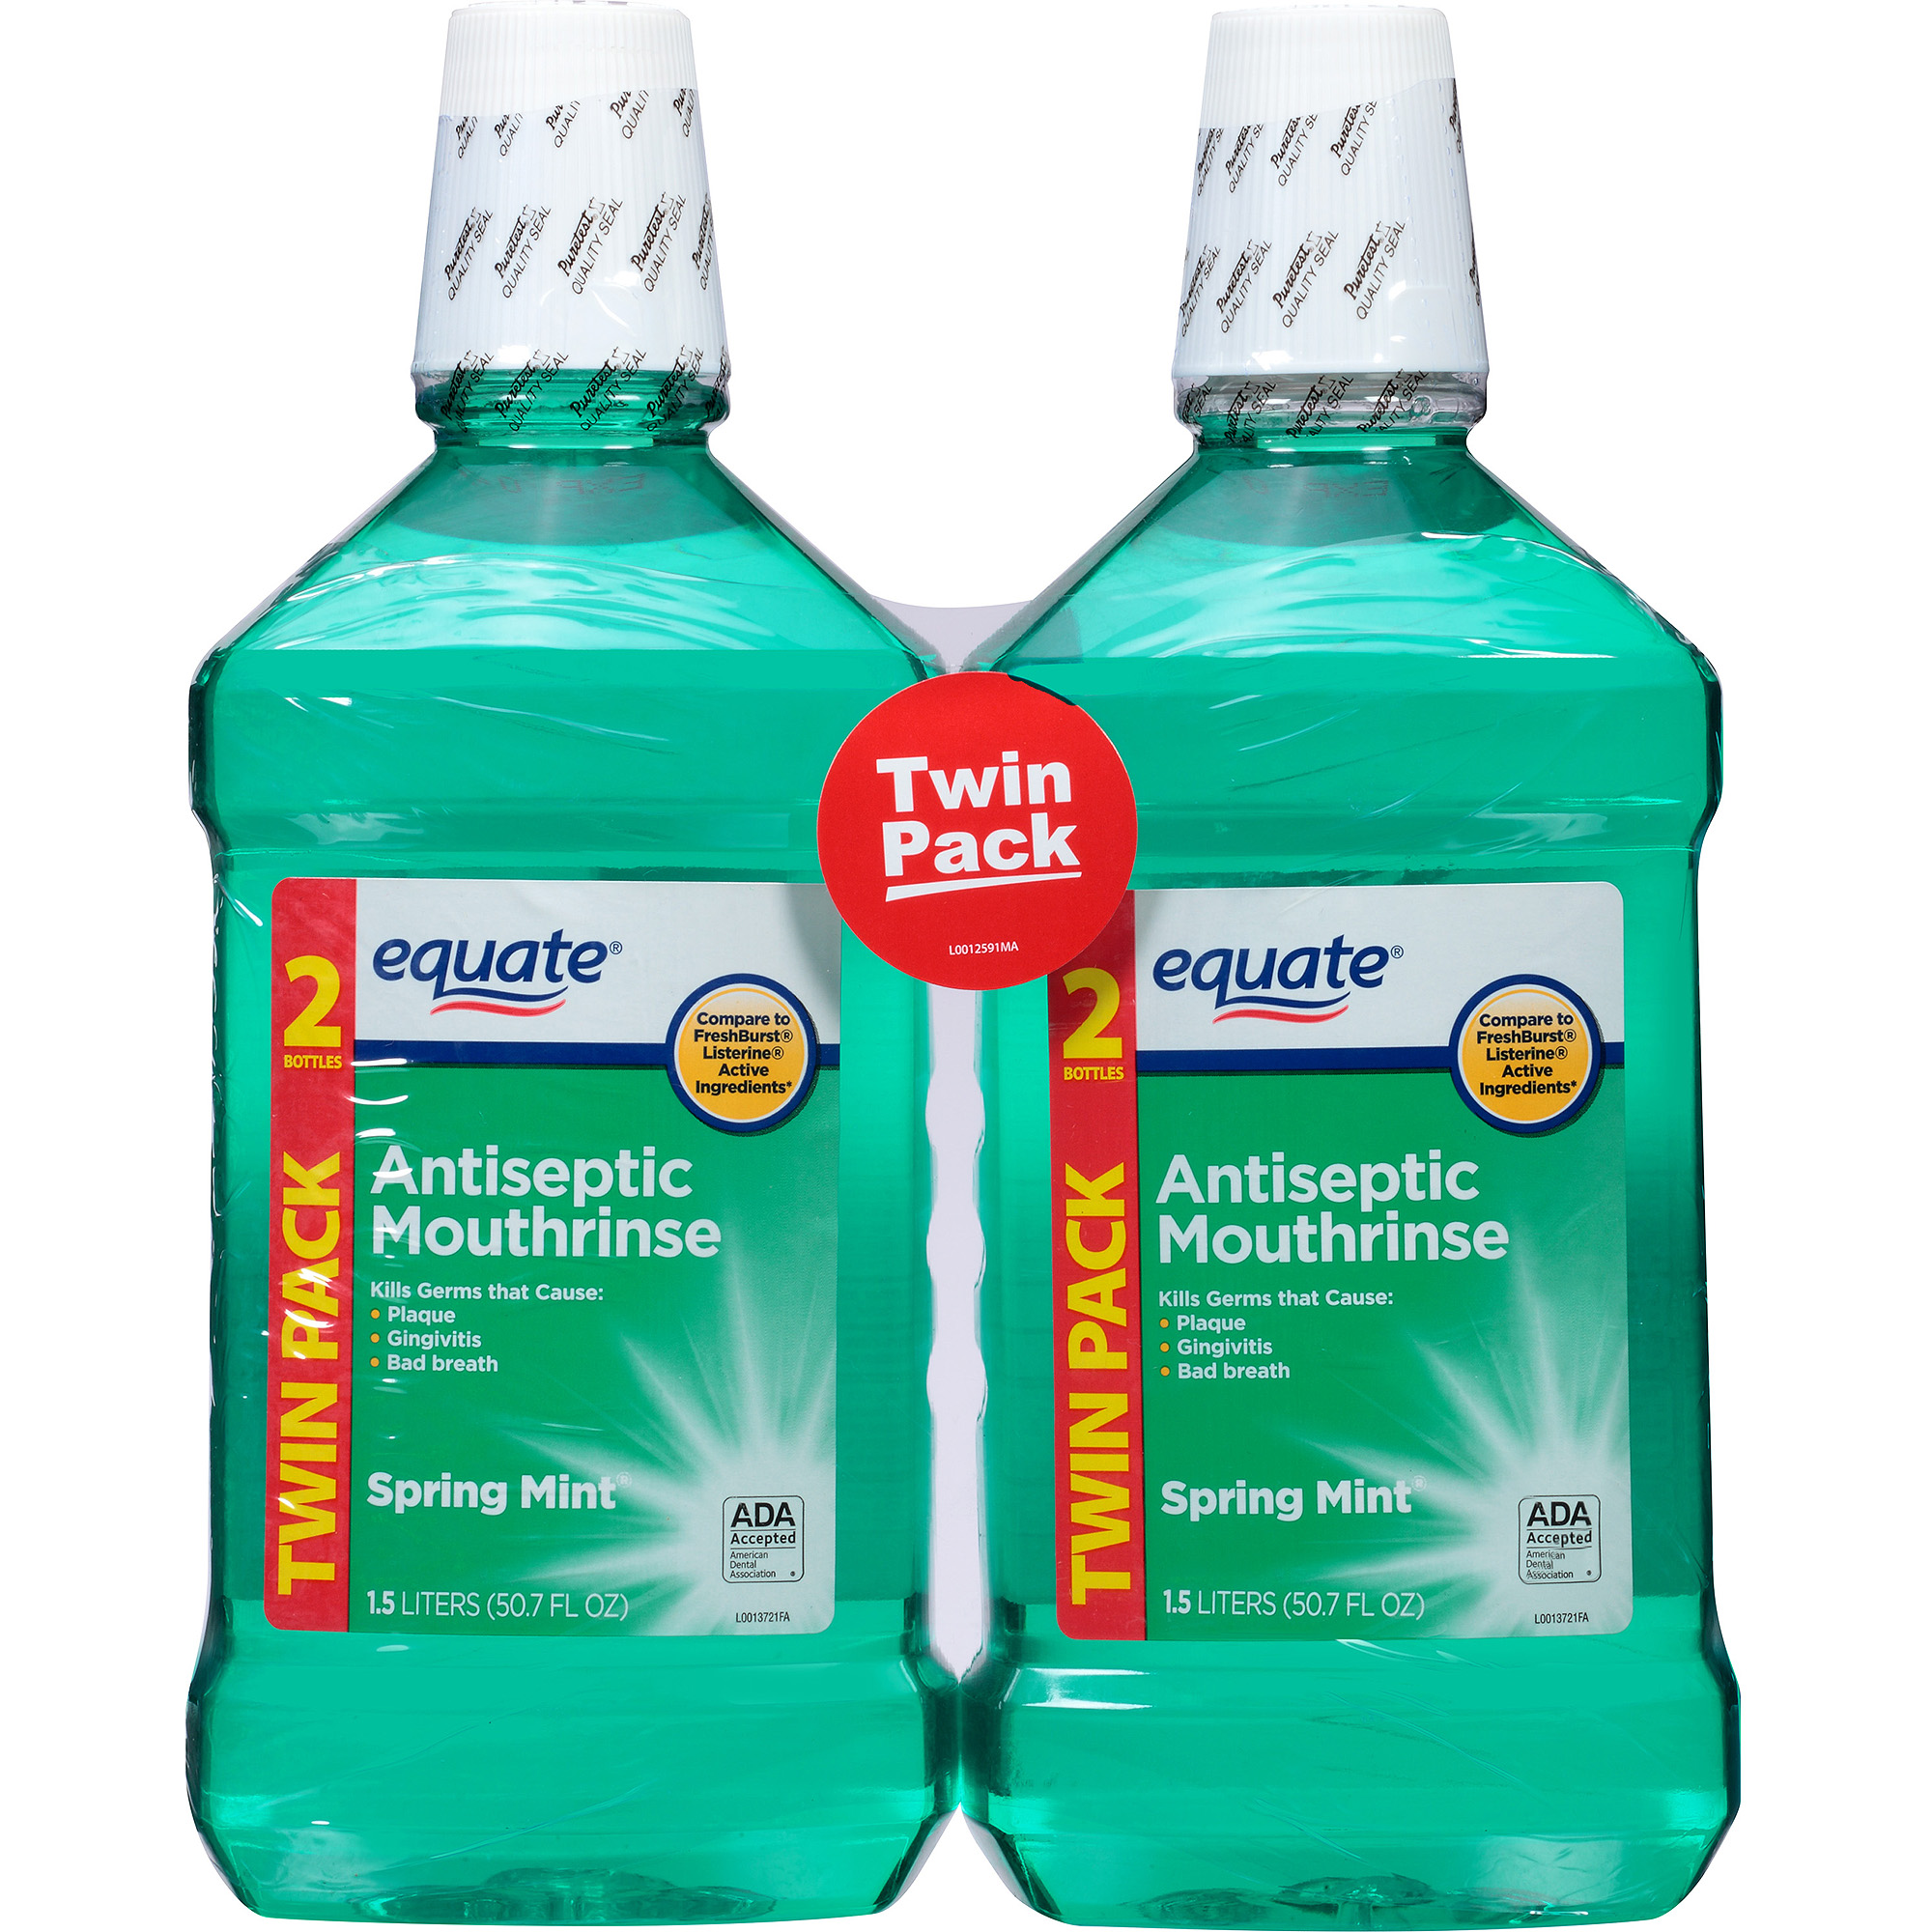 Equate Spring Mint Antiseptic Mouthrinse, 1.5 l, (Pack of 2)